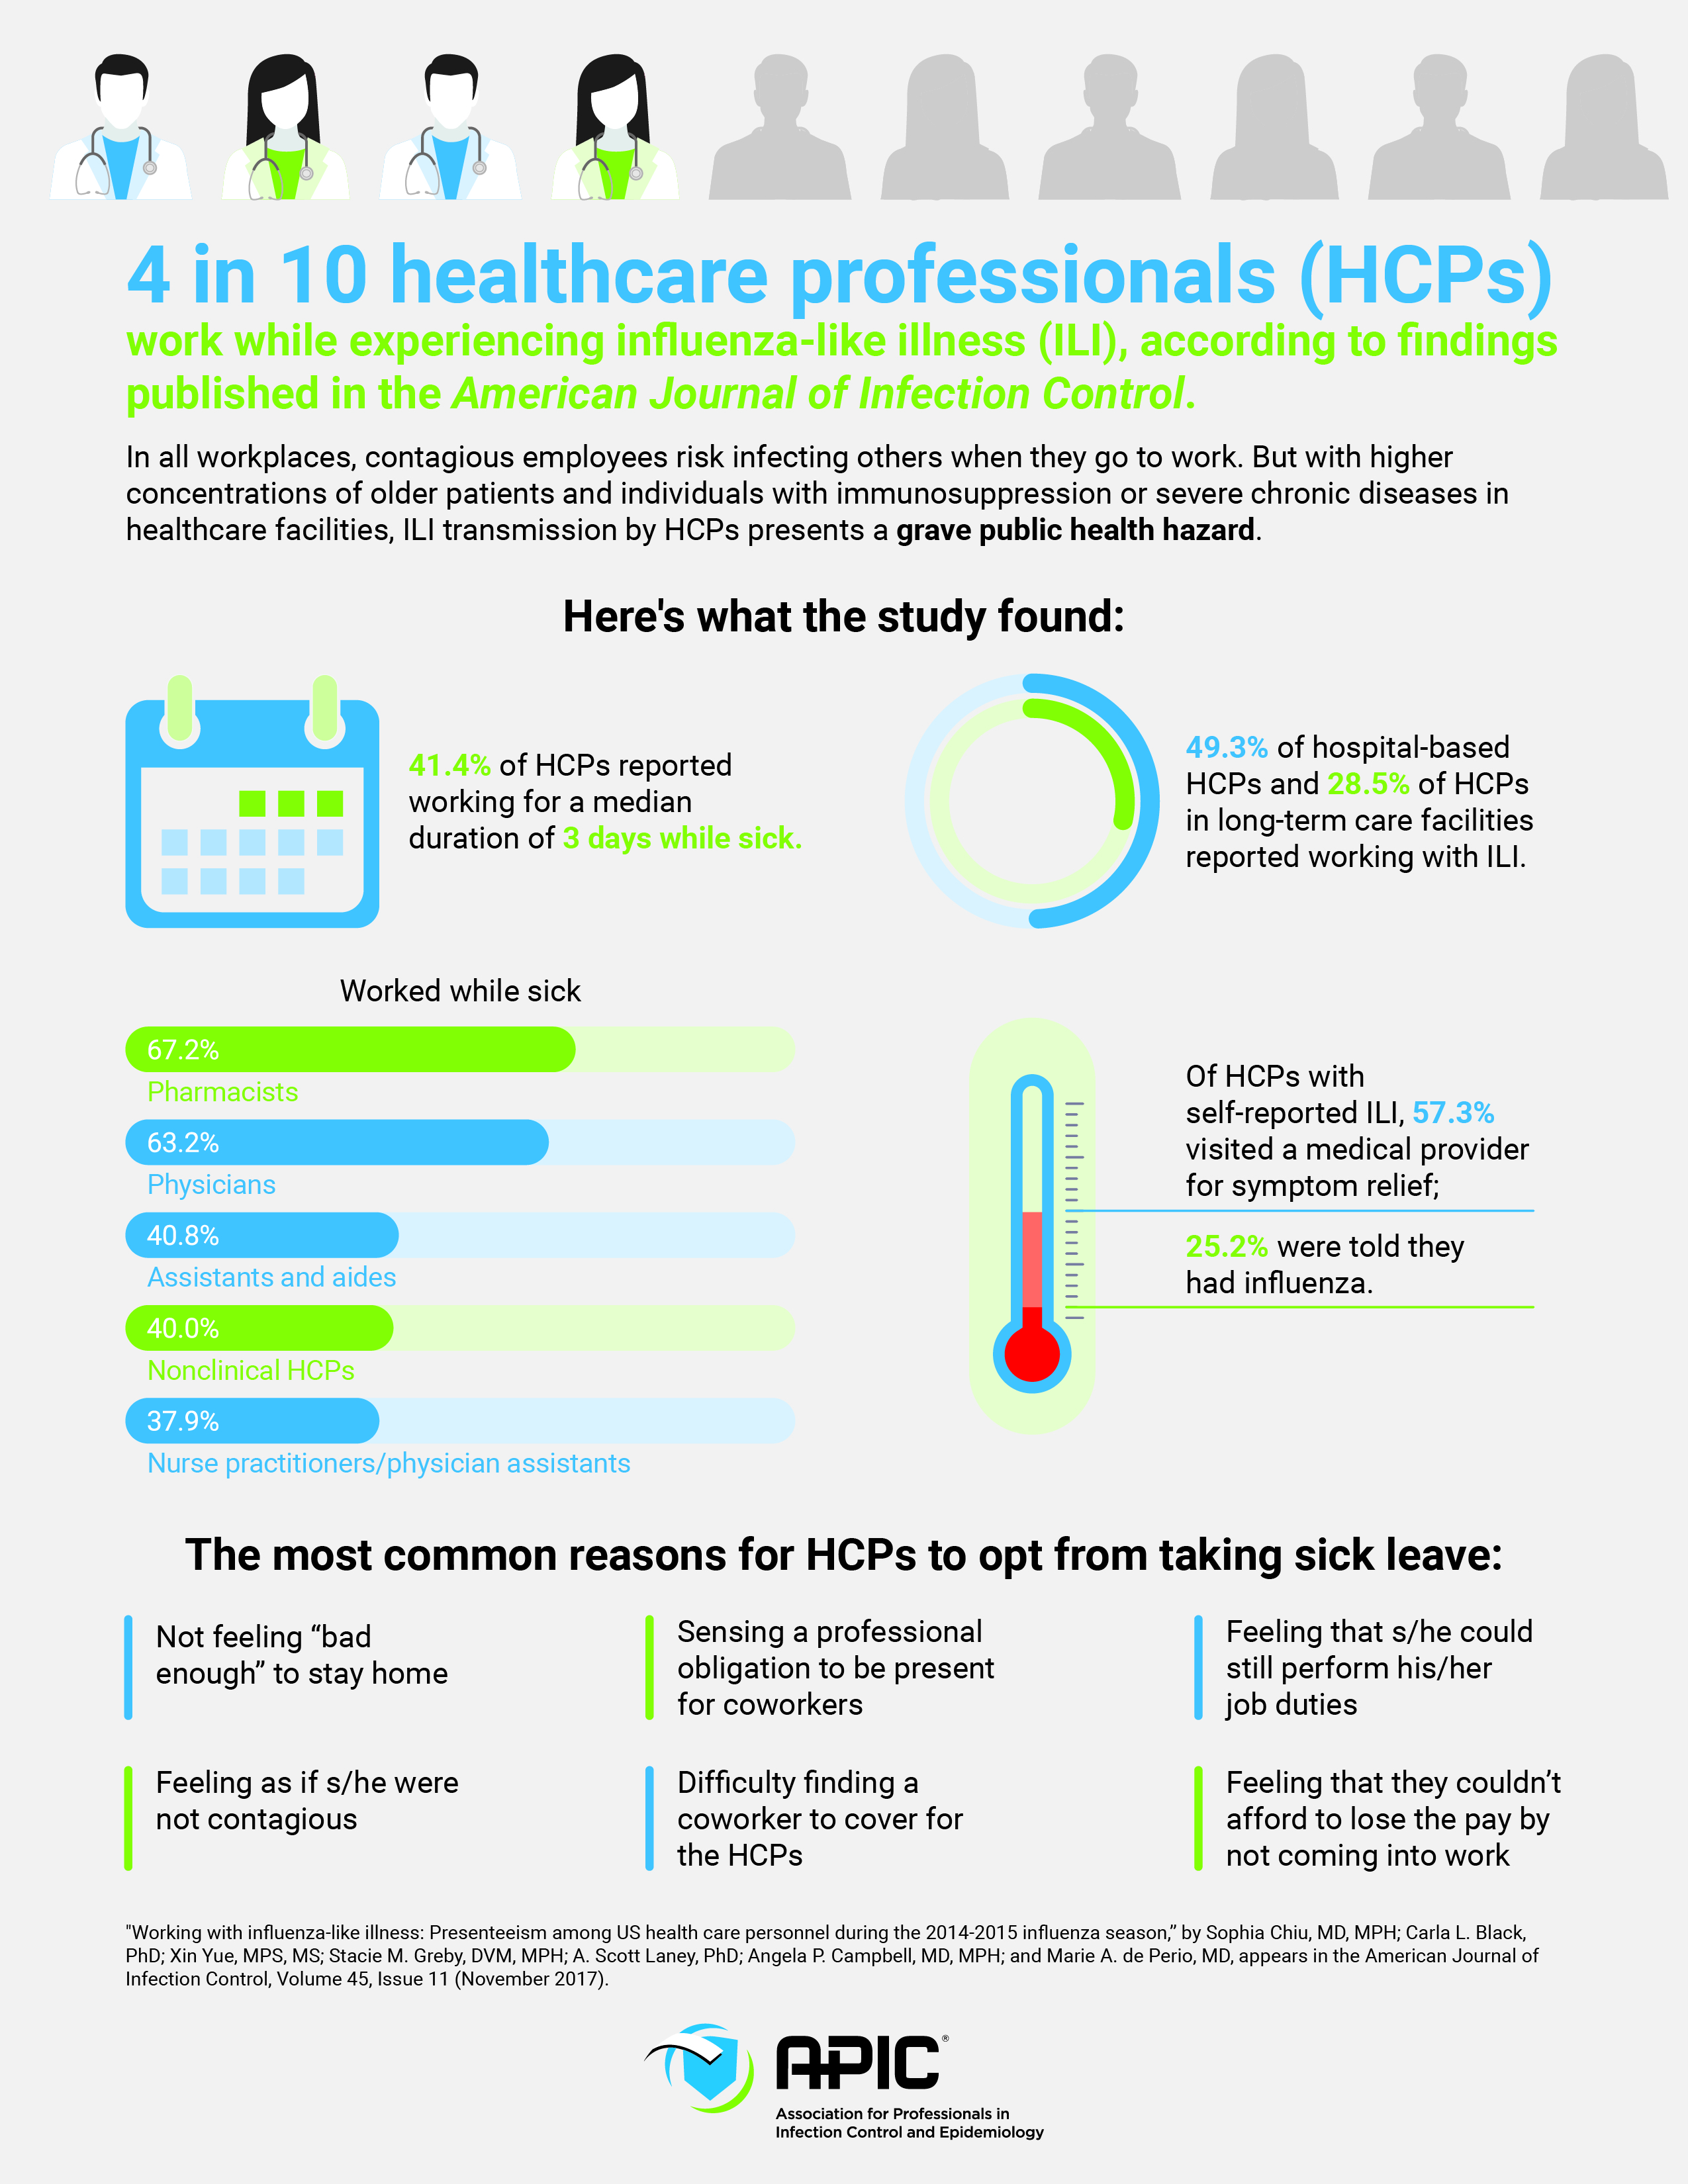 4 Days On 3 Days Off Work Schedule 4 in 10 healthcare professionals work while sick - apic